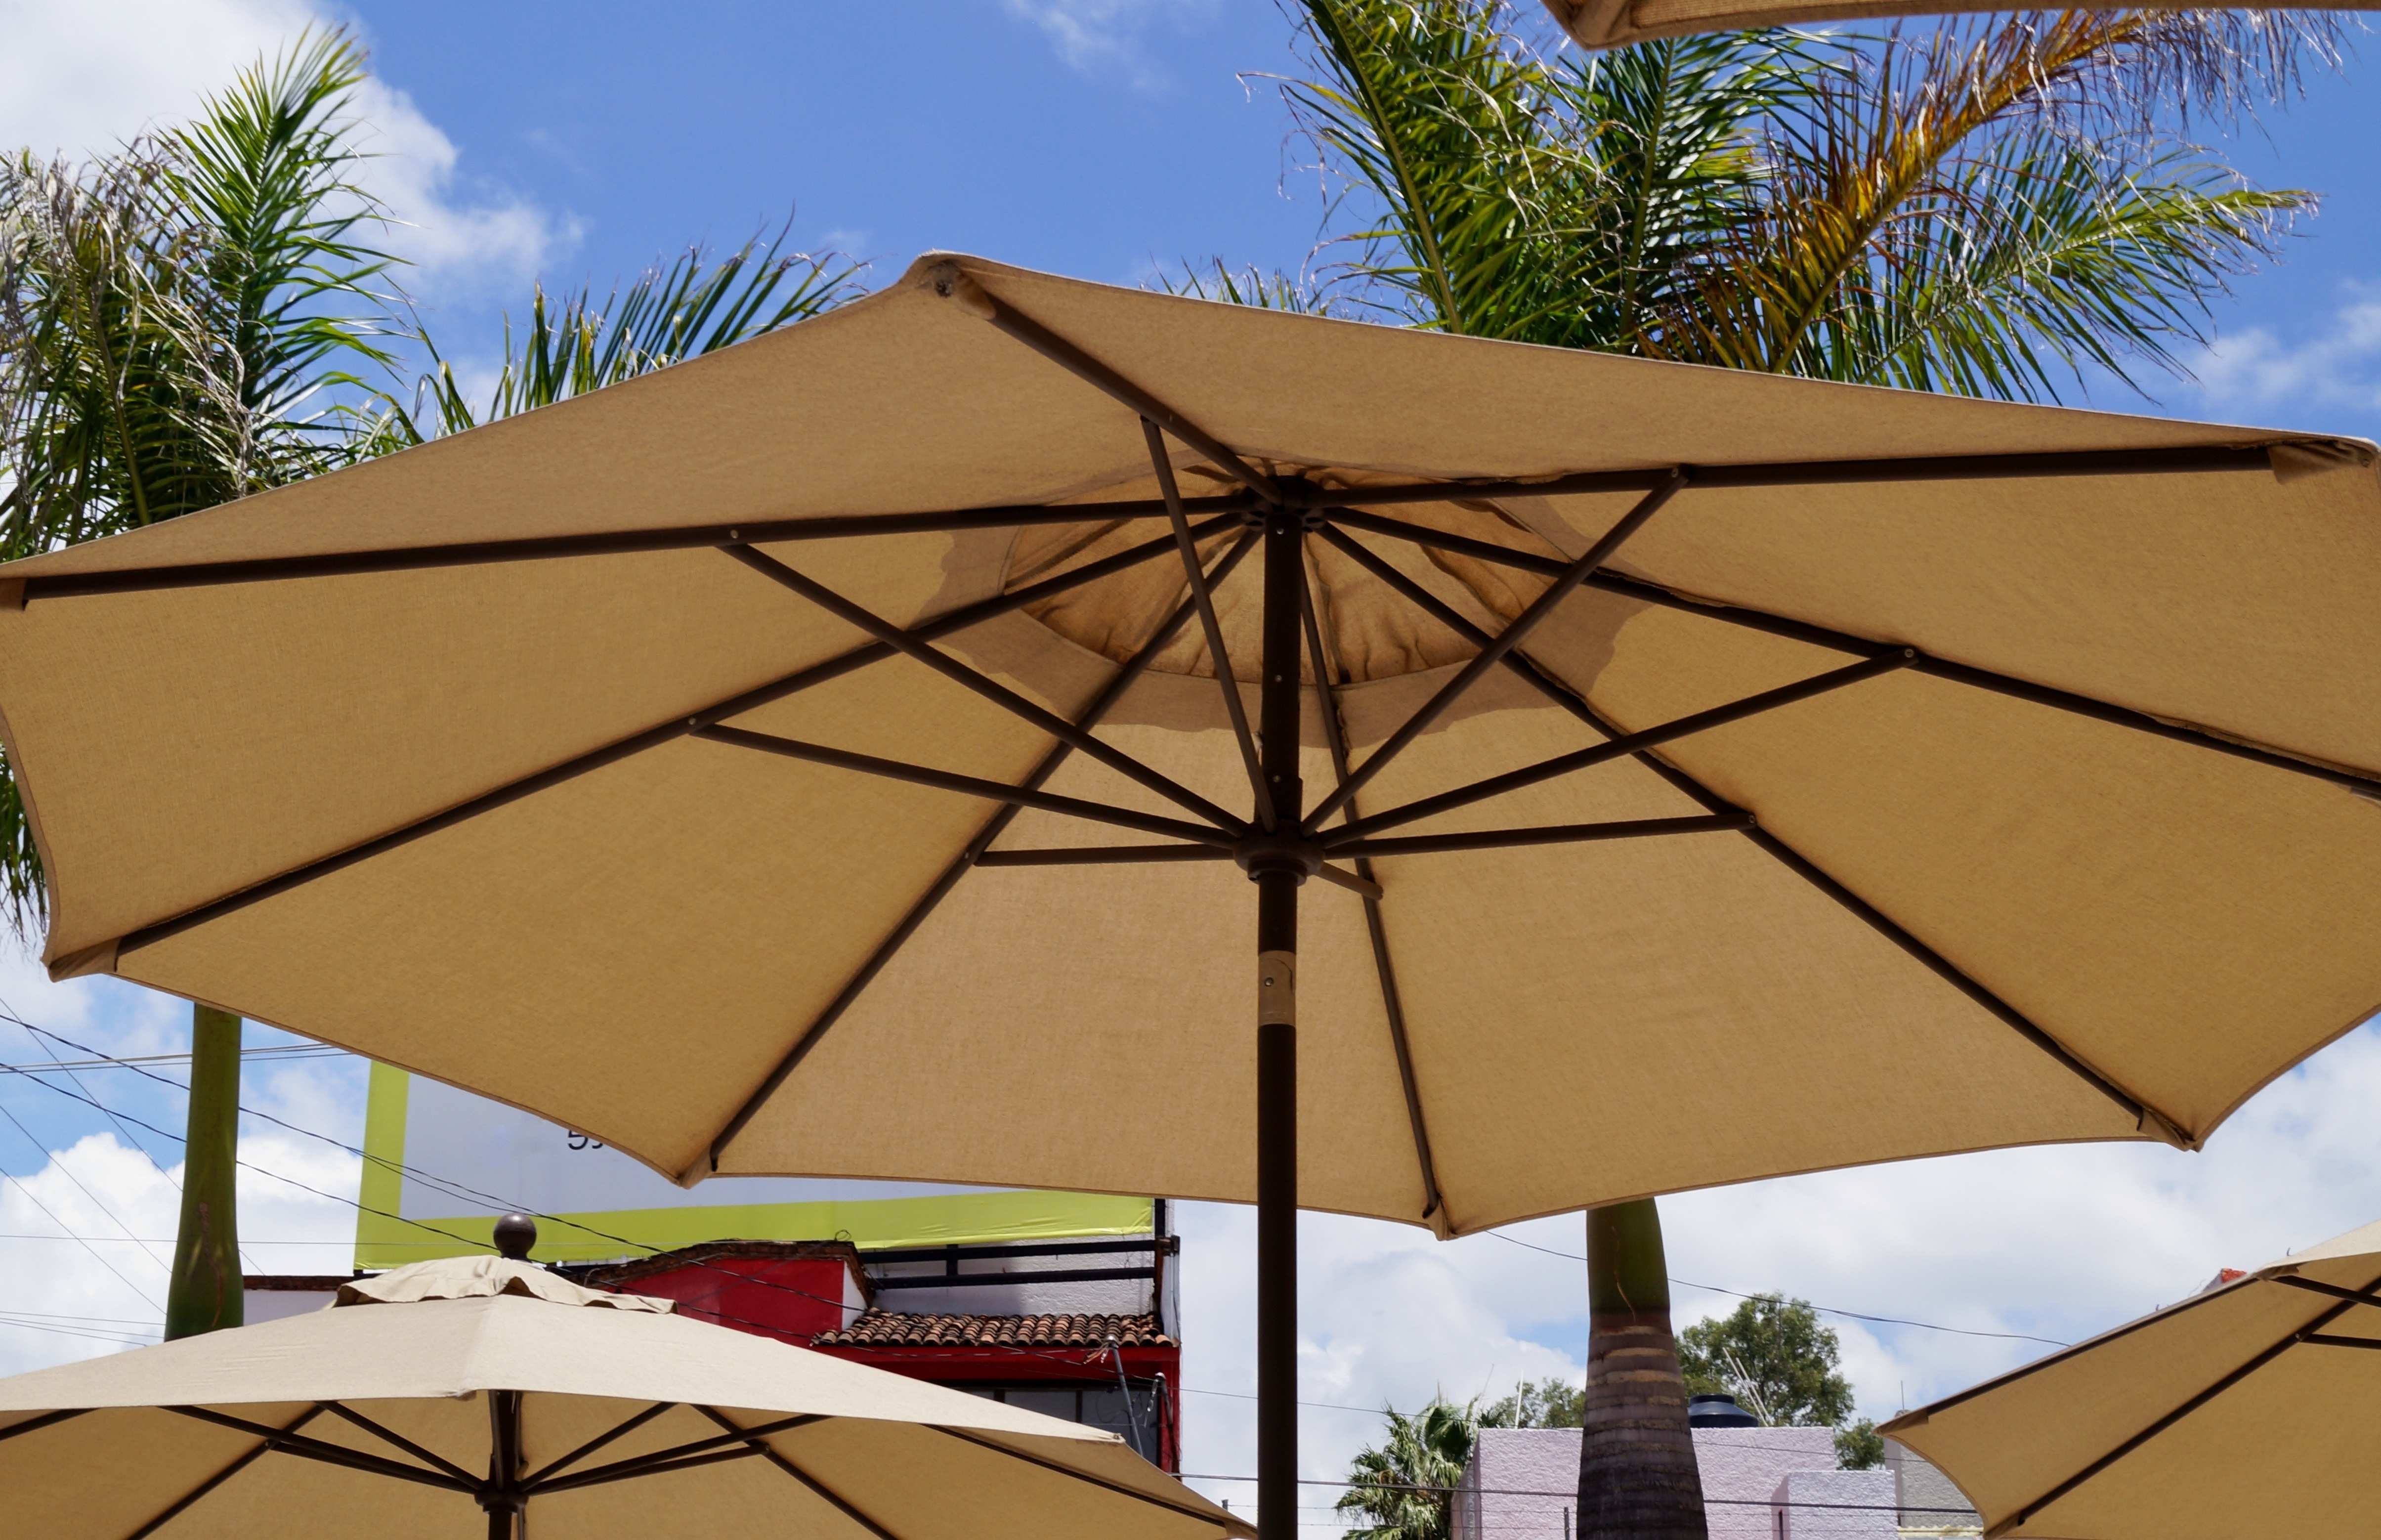 Commercial Outdoor Umbrellas Elegant Best For High Wind Areas This Within Most Popular Patio Umbrellas For High Wind Areas (Gallery 6 of 20)